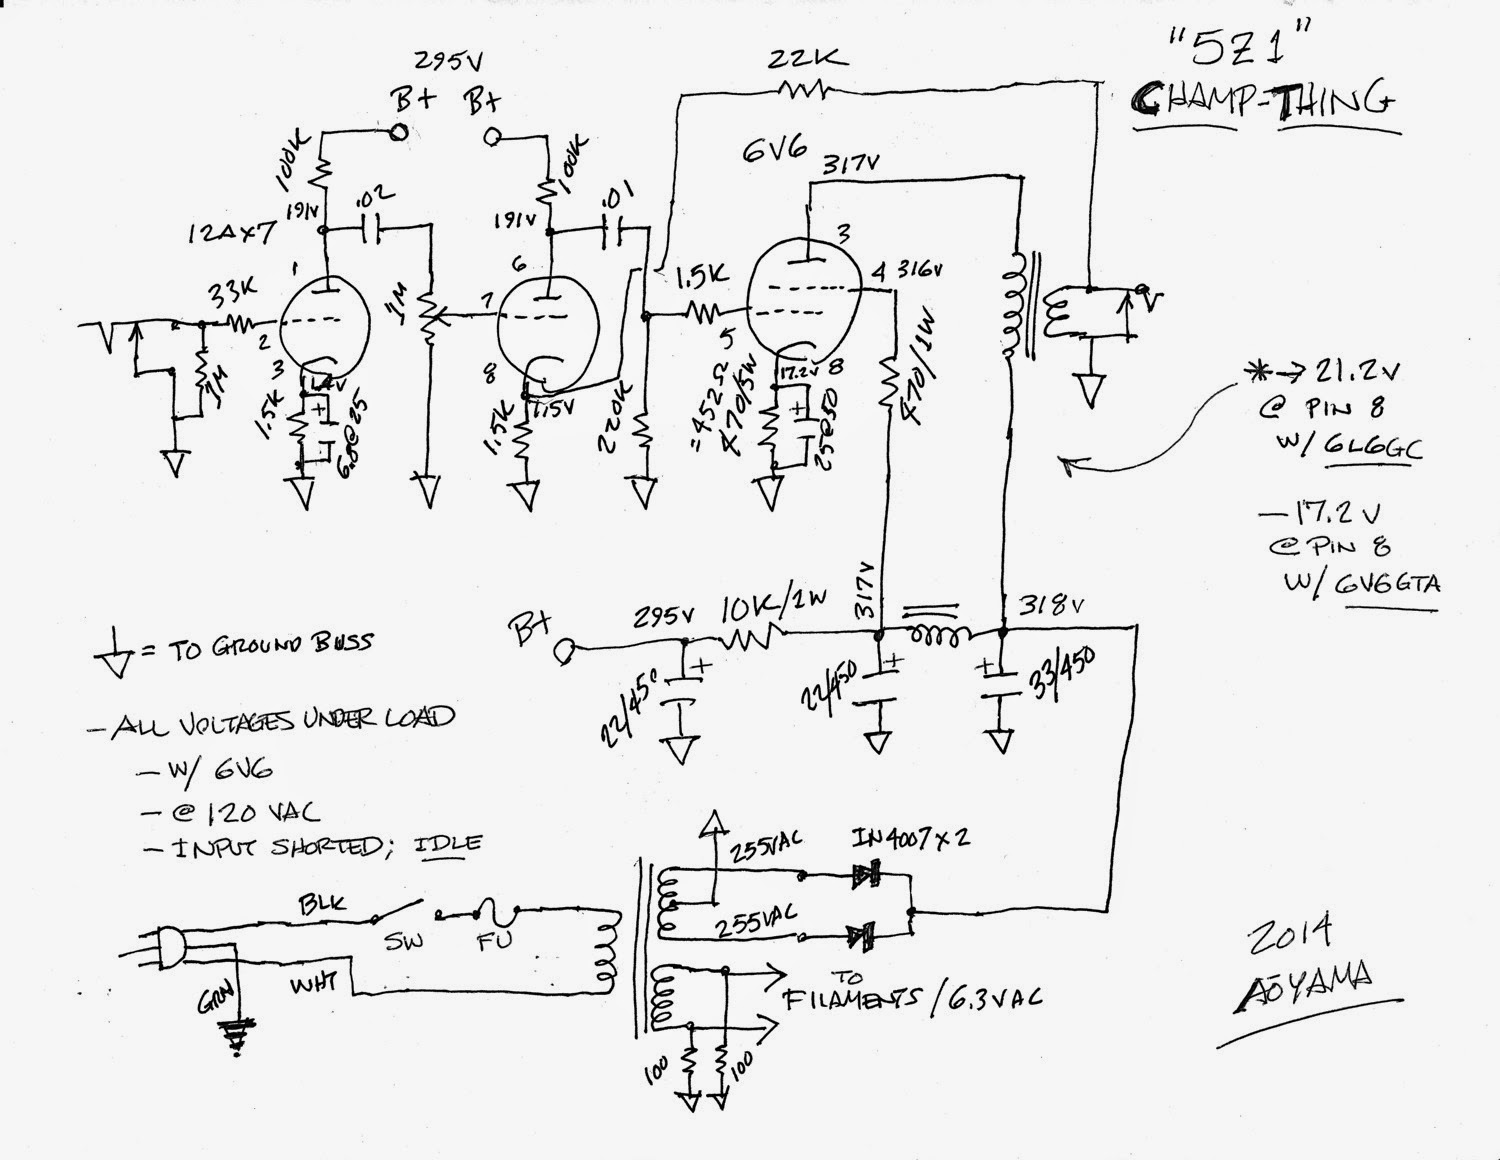 Guitar Amp Drawing at GetDrawings com | Free for personal use Guitar